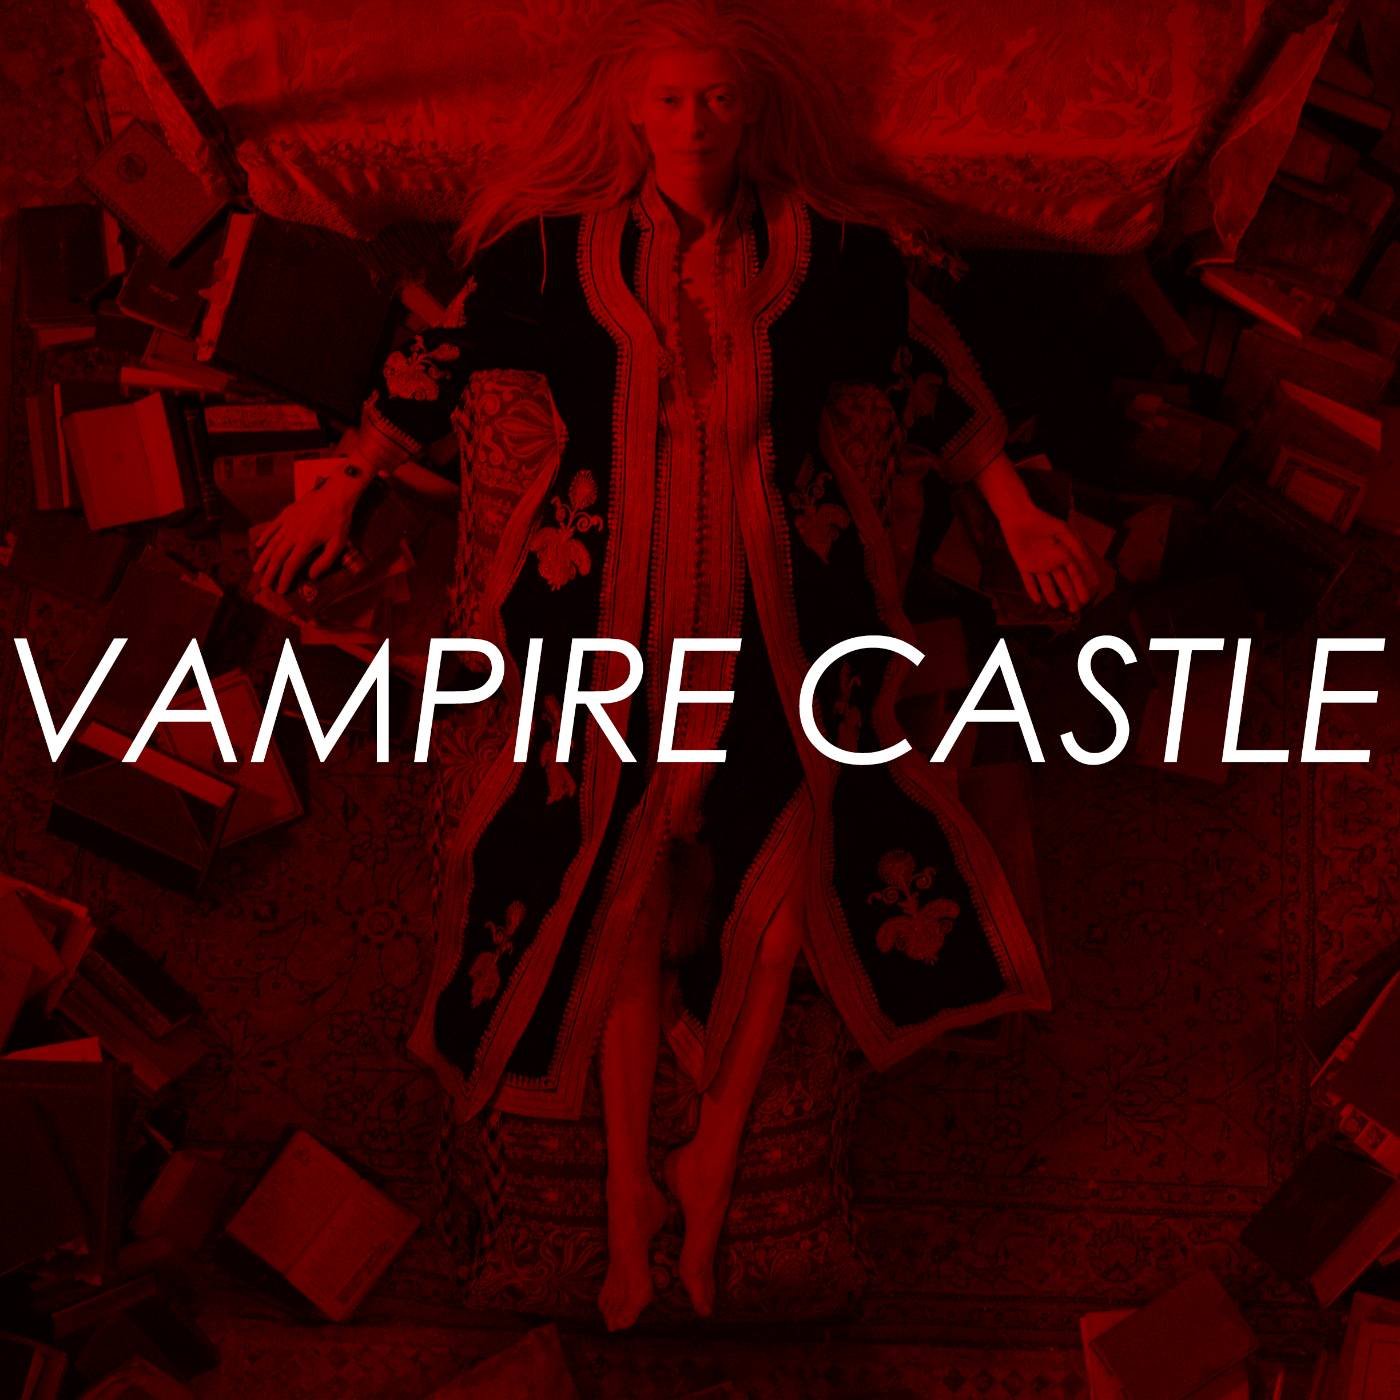 PREVIEW - Vampire Castle - Only Lovers Left Alive & A Girl Walks Home Alone At Night